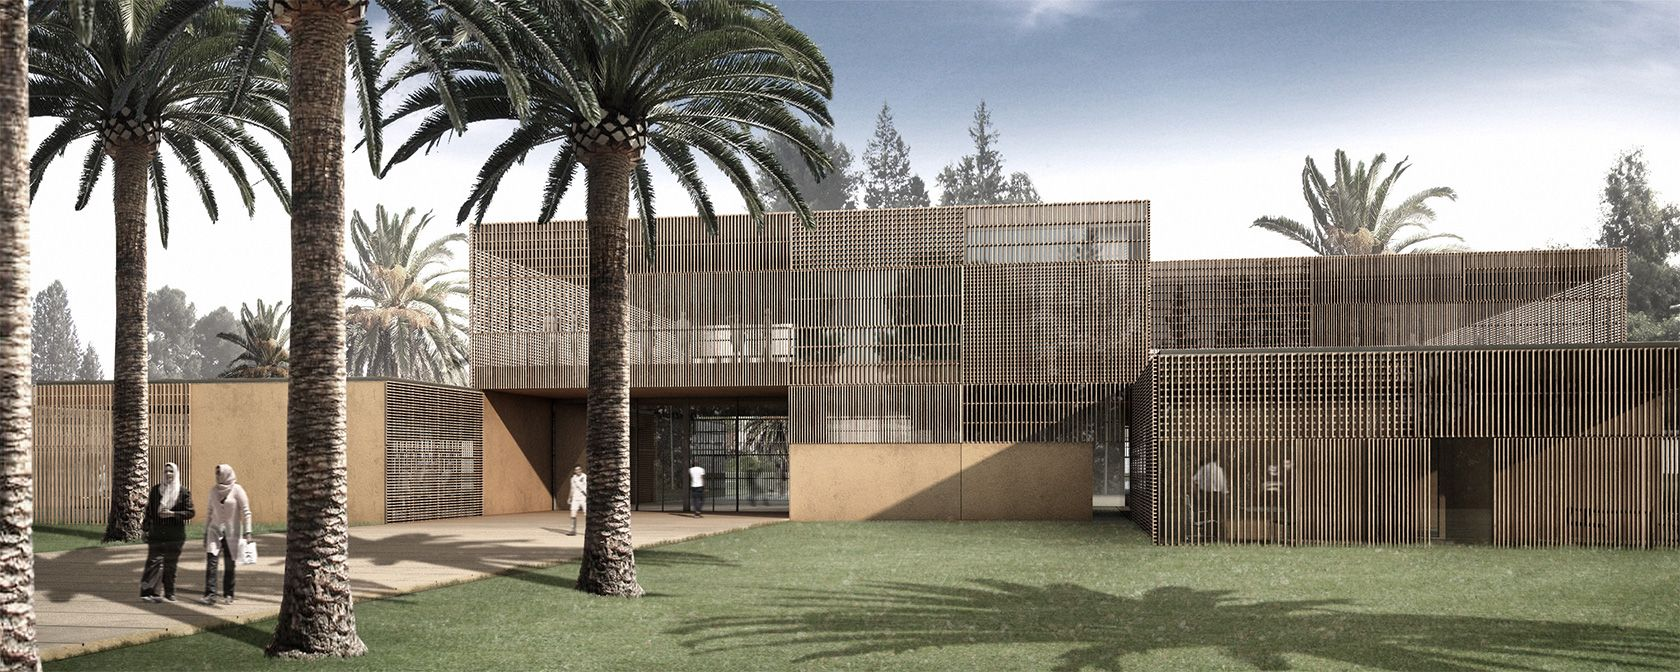 club ocp public facilities architecture anna noguera